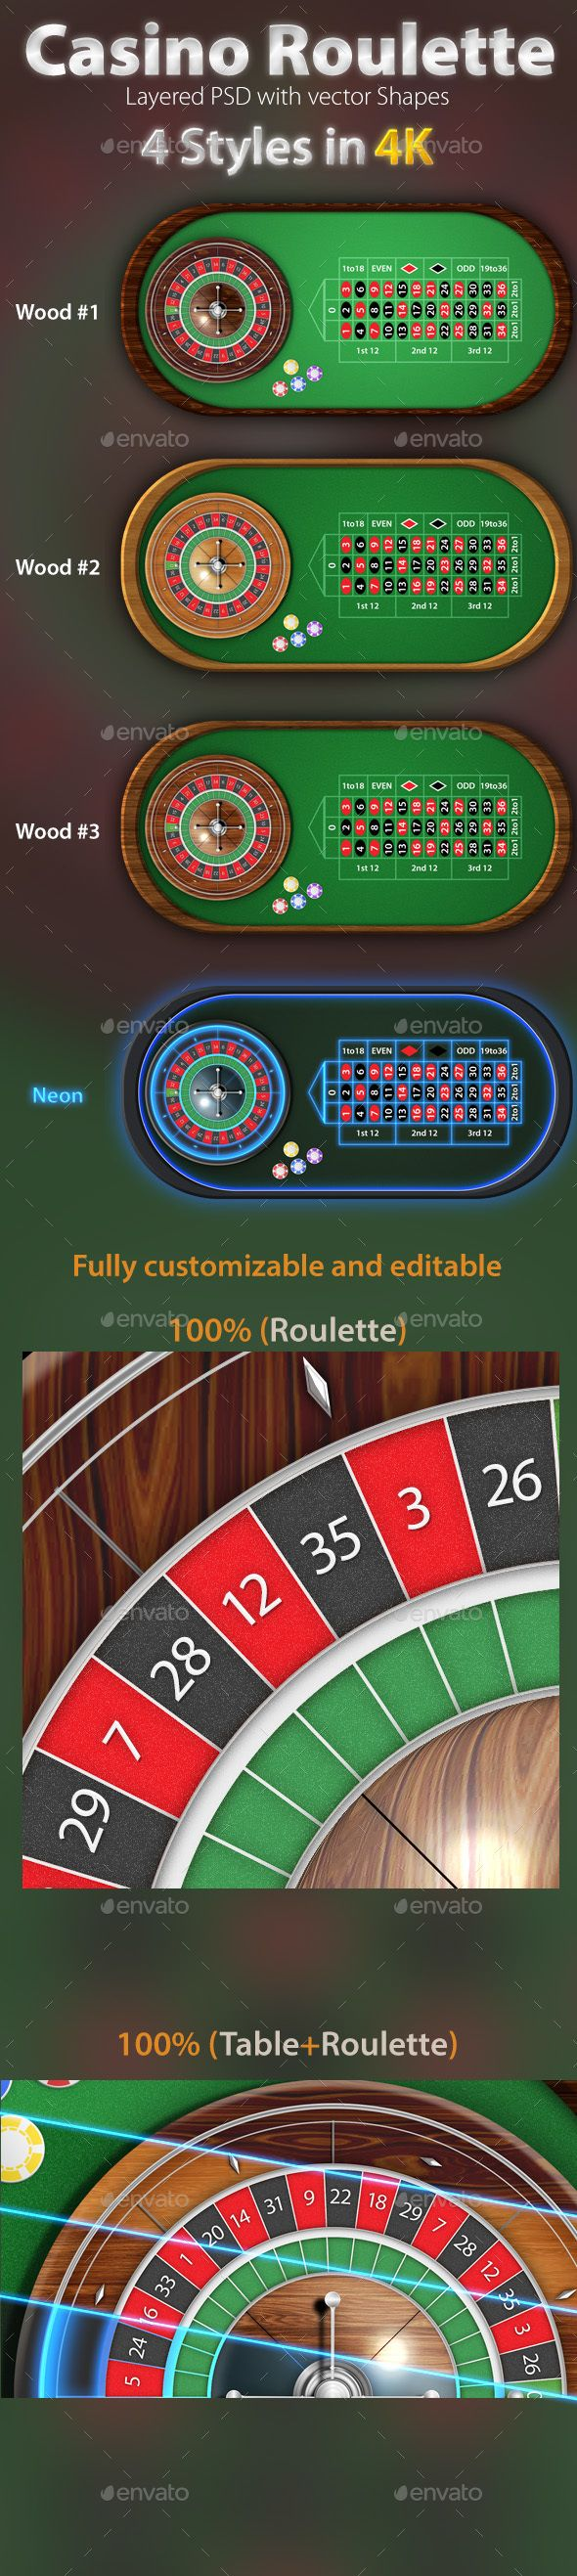 Party casino roulette mac ways to prevent gambling